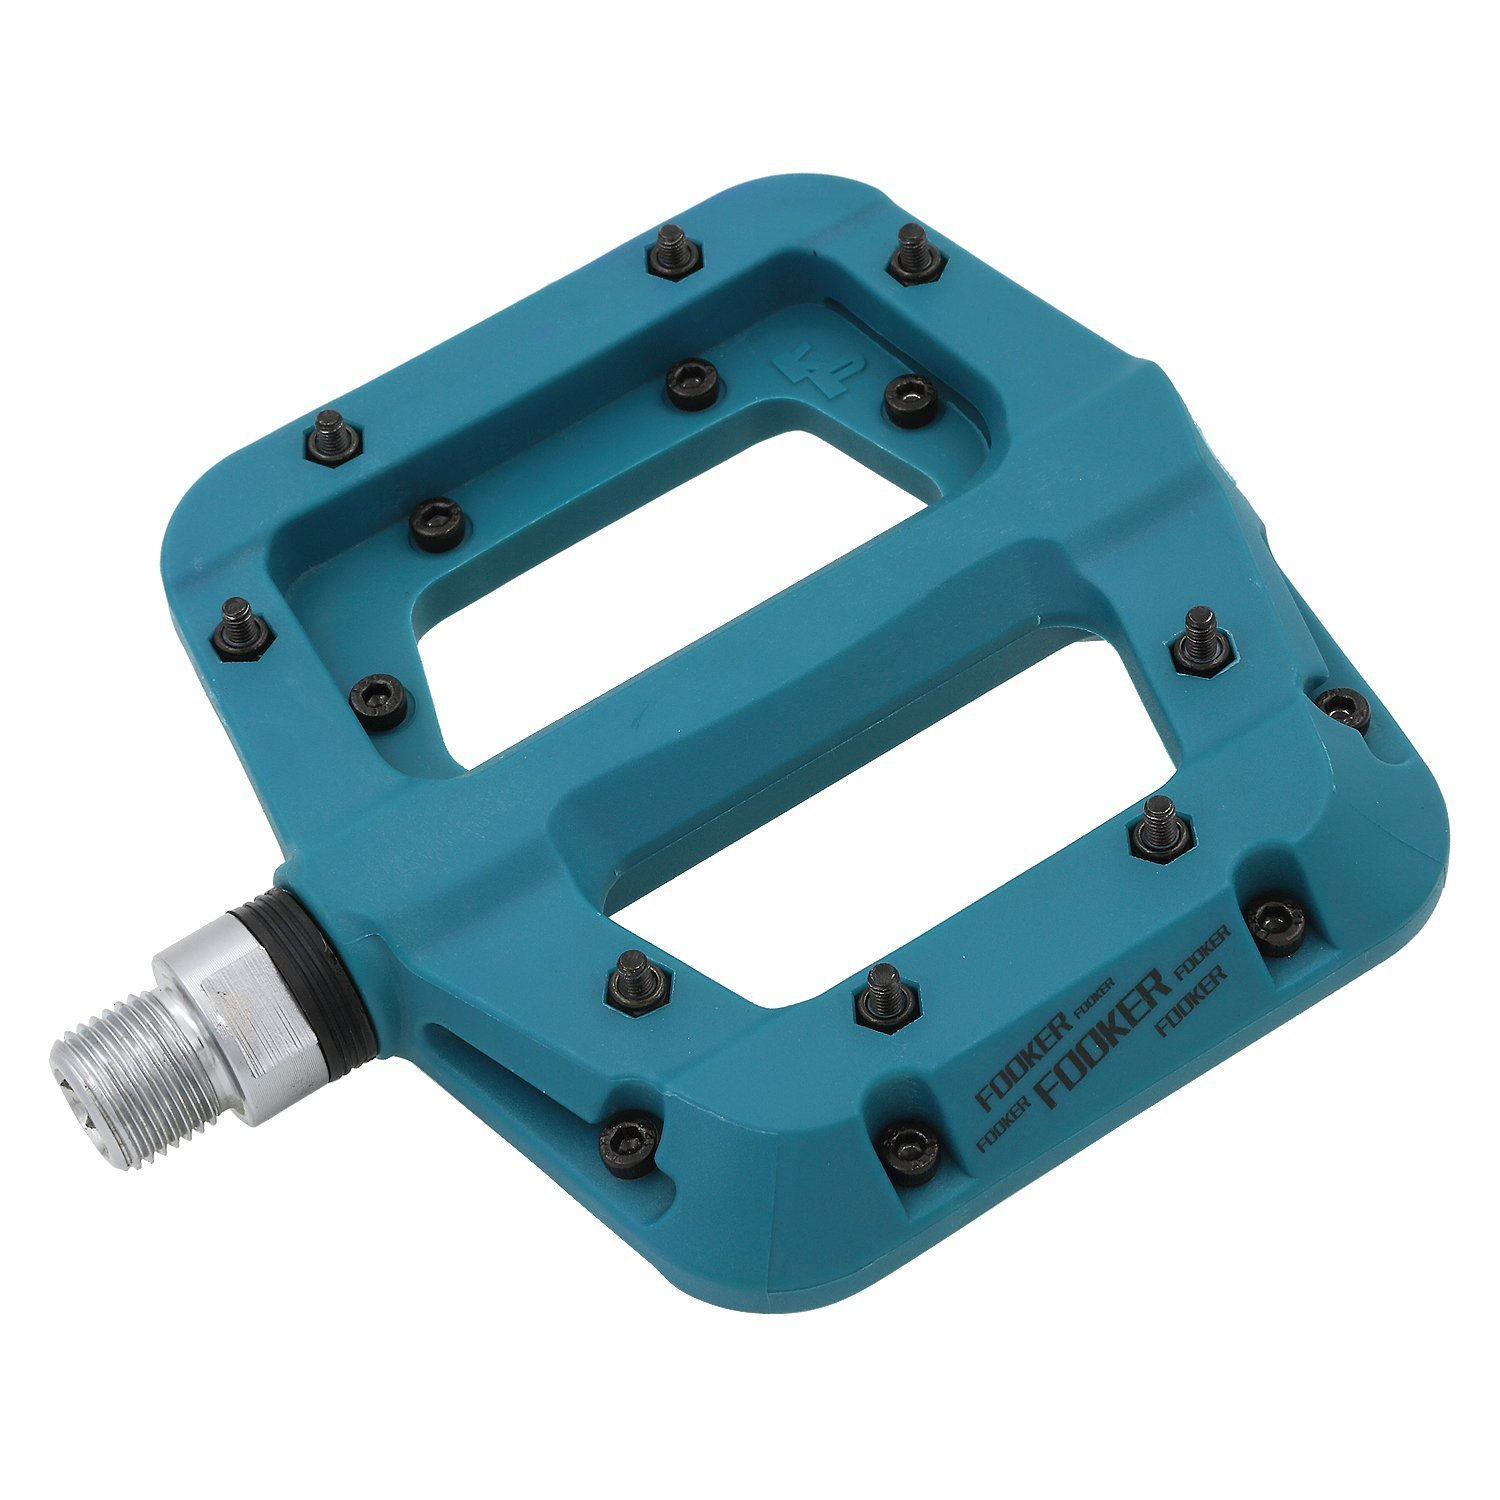 FOOKER MTB Bike Pedal Nylon 3 Bearing Composite 9/29 Mountain Bike Pedals High-Strength Non-Slip Bicycle Pedals Surface for Road BMX MTB Fixie Bikesflat Bike by FOOKER